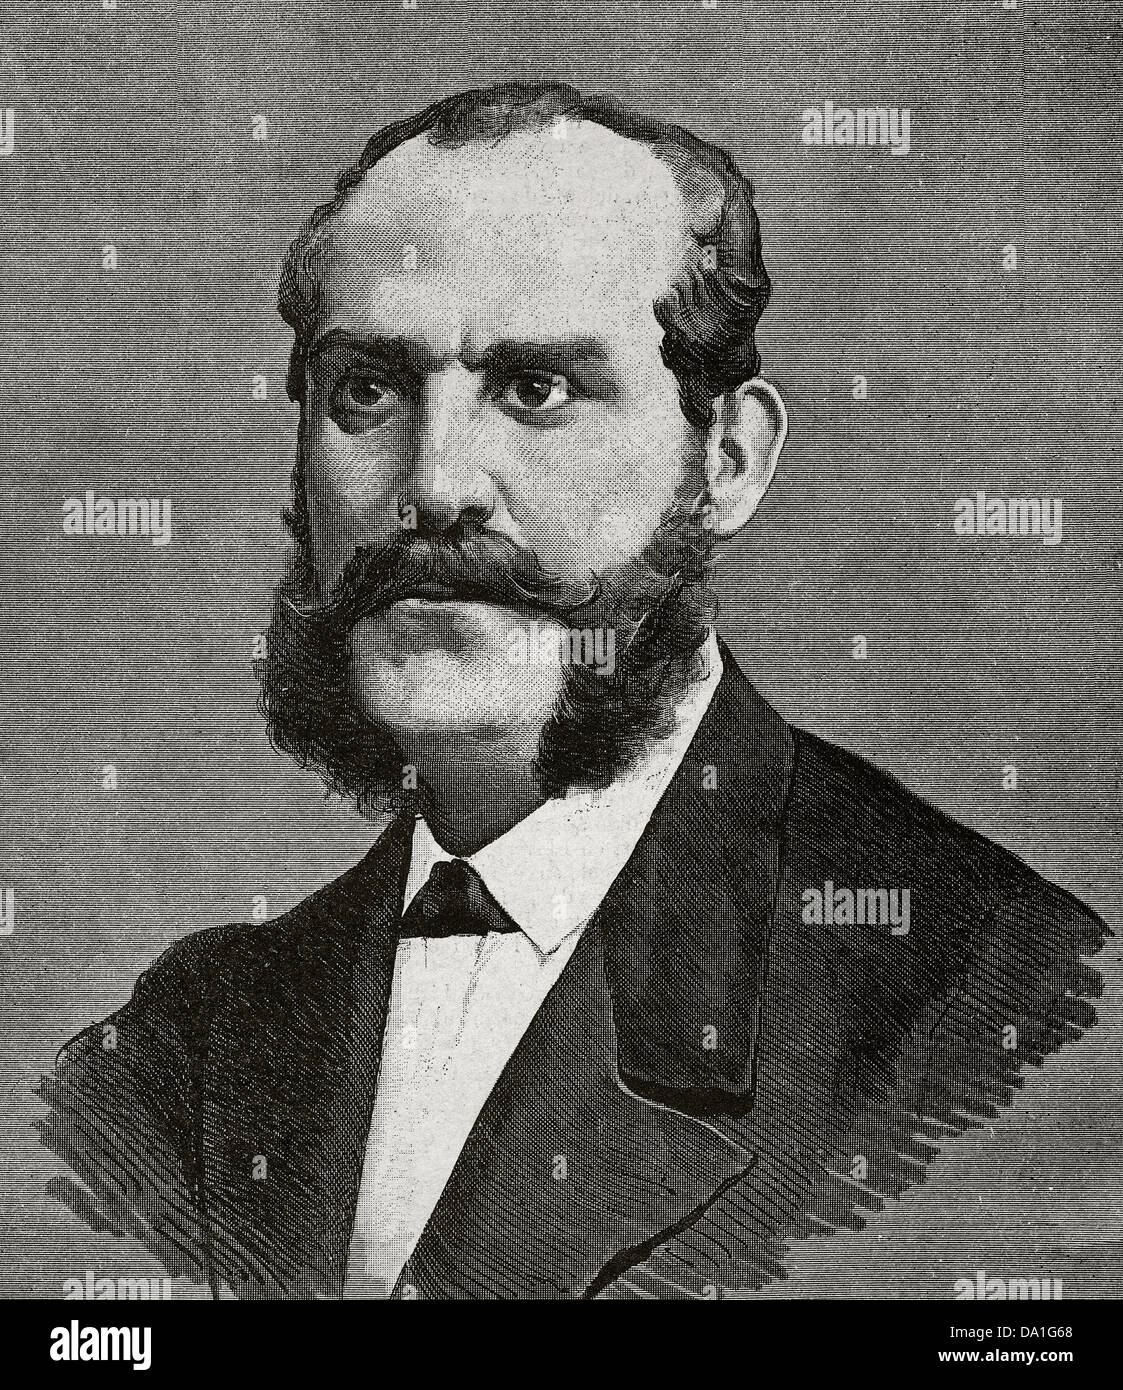 Juan Bautista Topete y Carballo (1821-1885). Spanish naval commander and politician. Engraving. - Stock Image